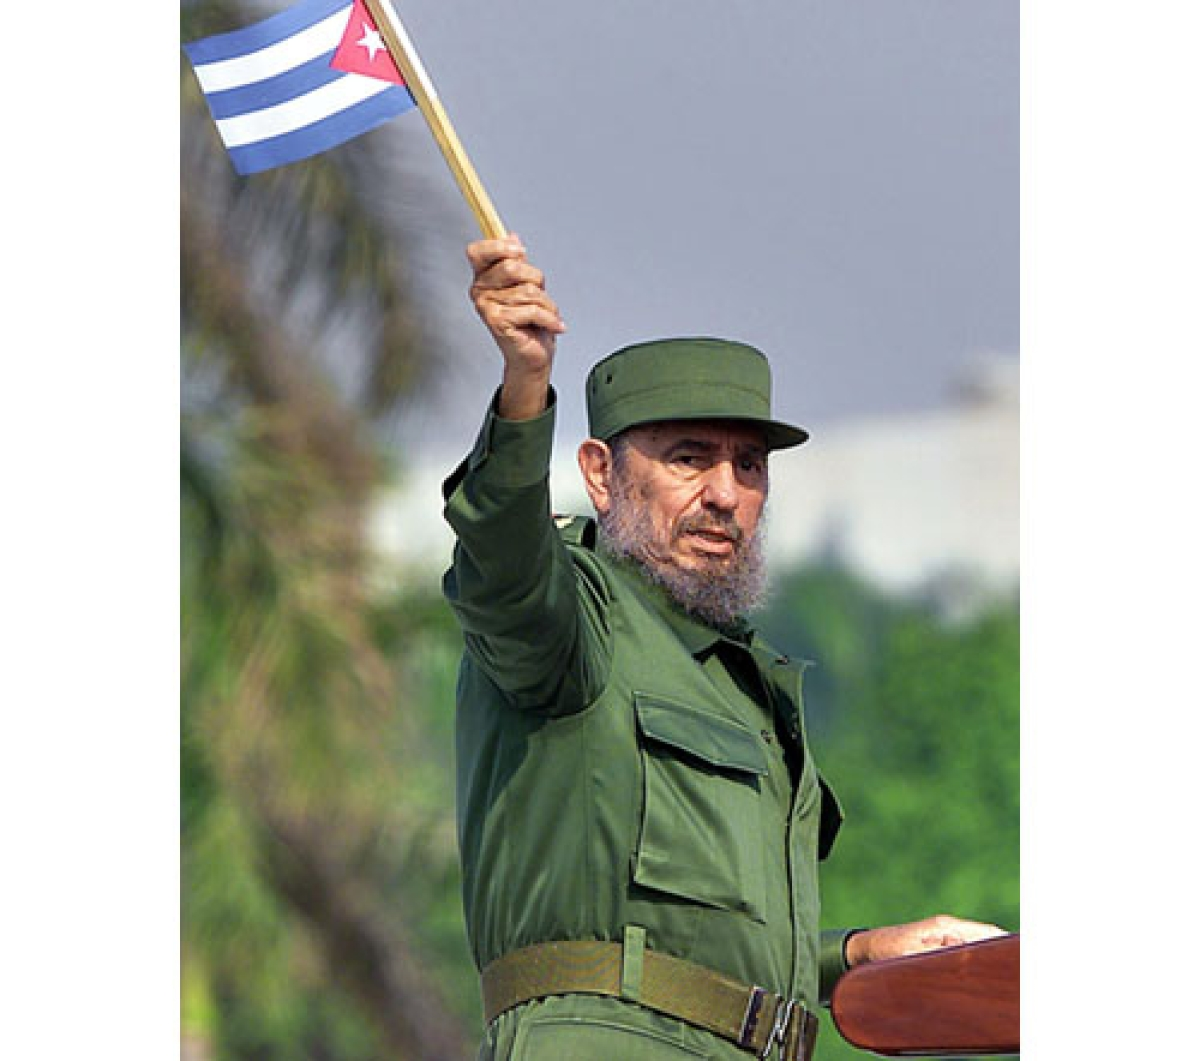 (FILES) This 01 May 2002 file photo shows Cuban President Fidel Castro waving a Cuban flag during a May Day rally in Havana. Cuban revolutionary icon Fidel Castro died late on November 25, 2016 in Havana, his brother, President Raul Castro, announced on national television. / AFP PHOTO / ADALBERTO ROQUE